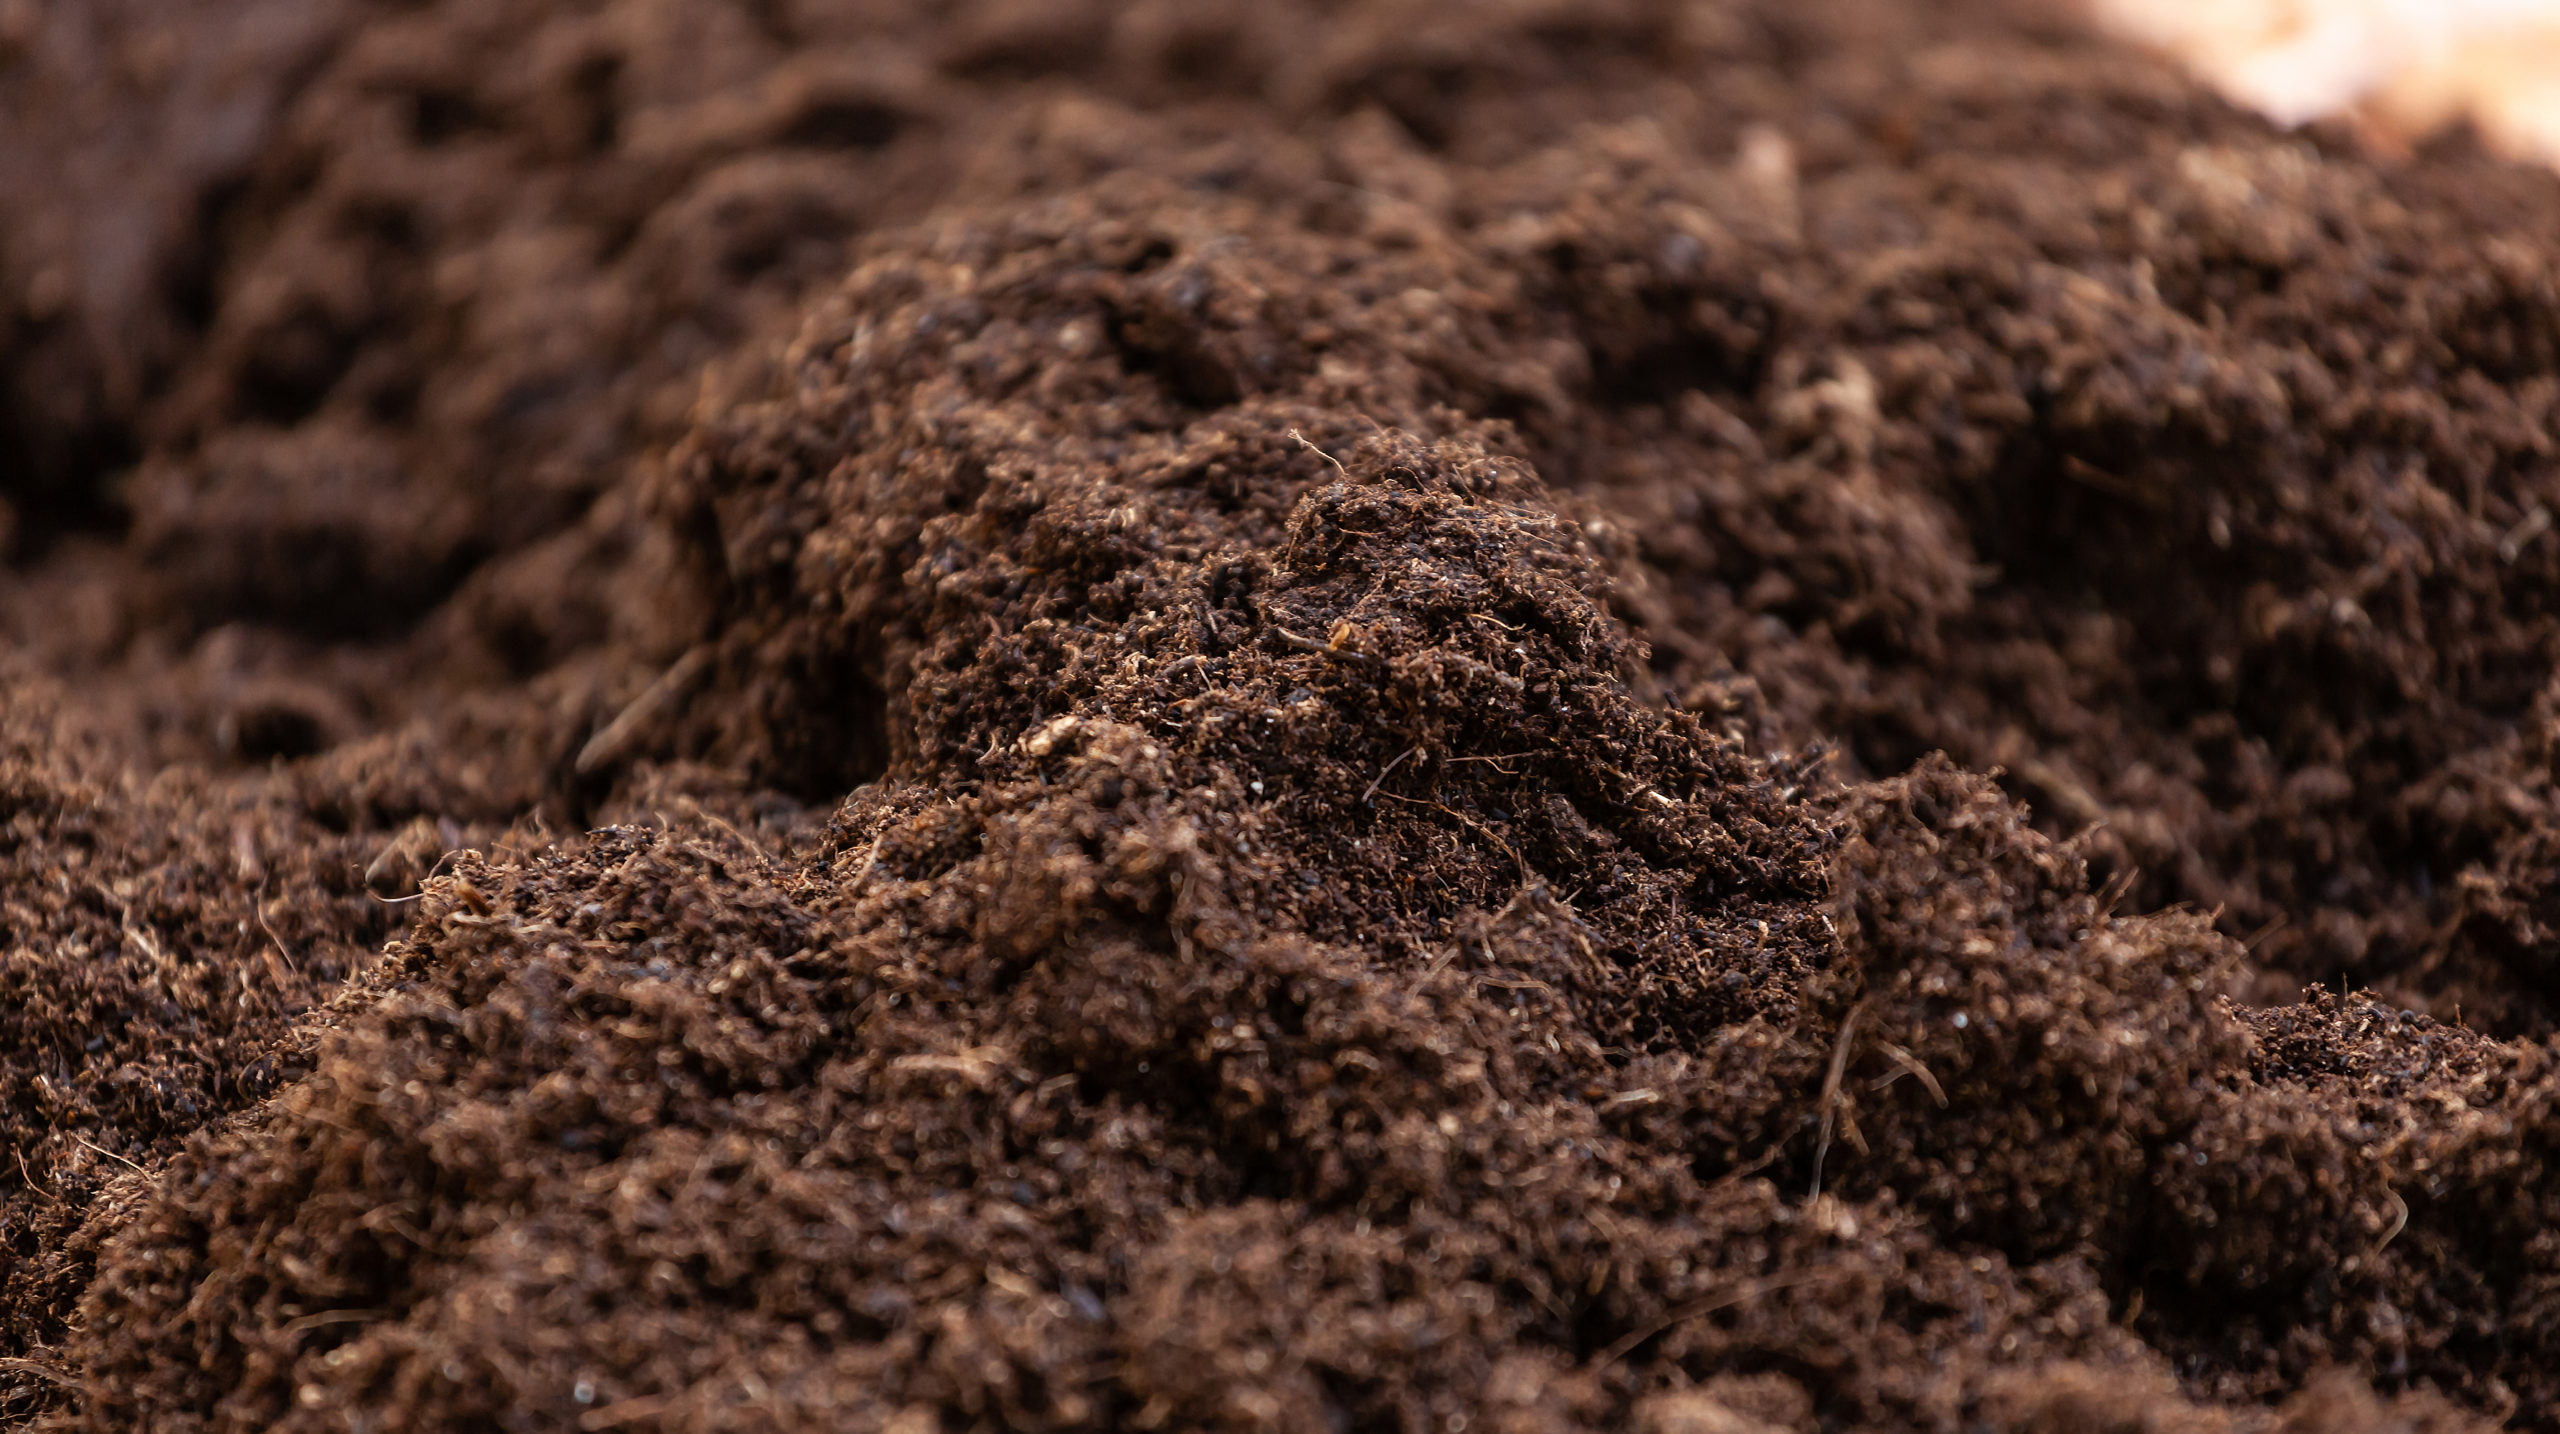 Clean soil for cultivation. The potting soil or peat is suitable for gardening and is one of the four natural elements. The land is life for our planet earth. Selective Focus.